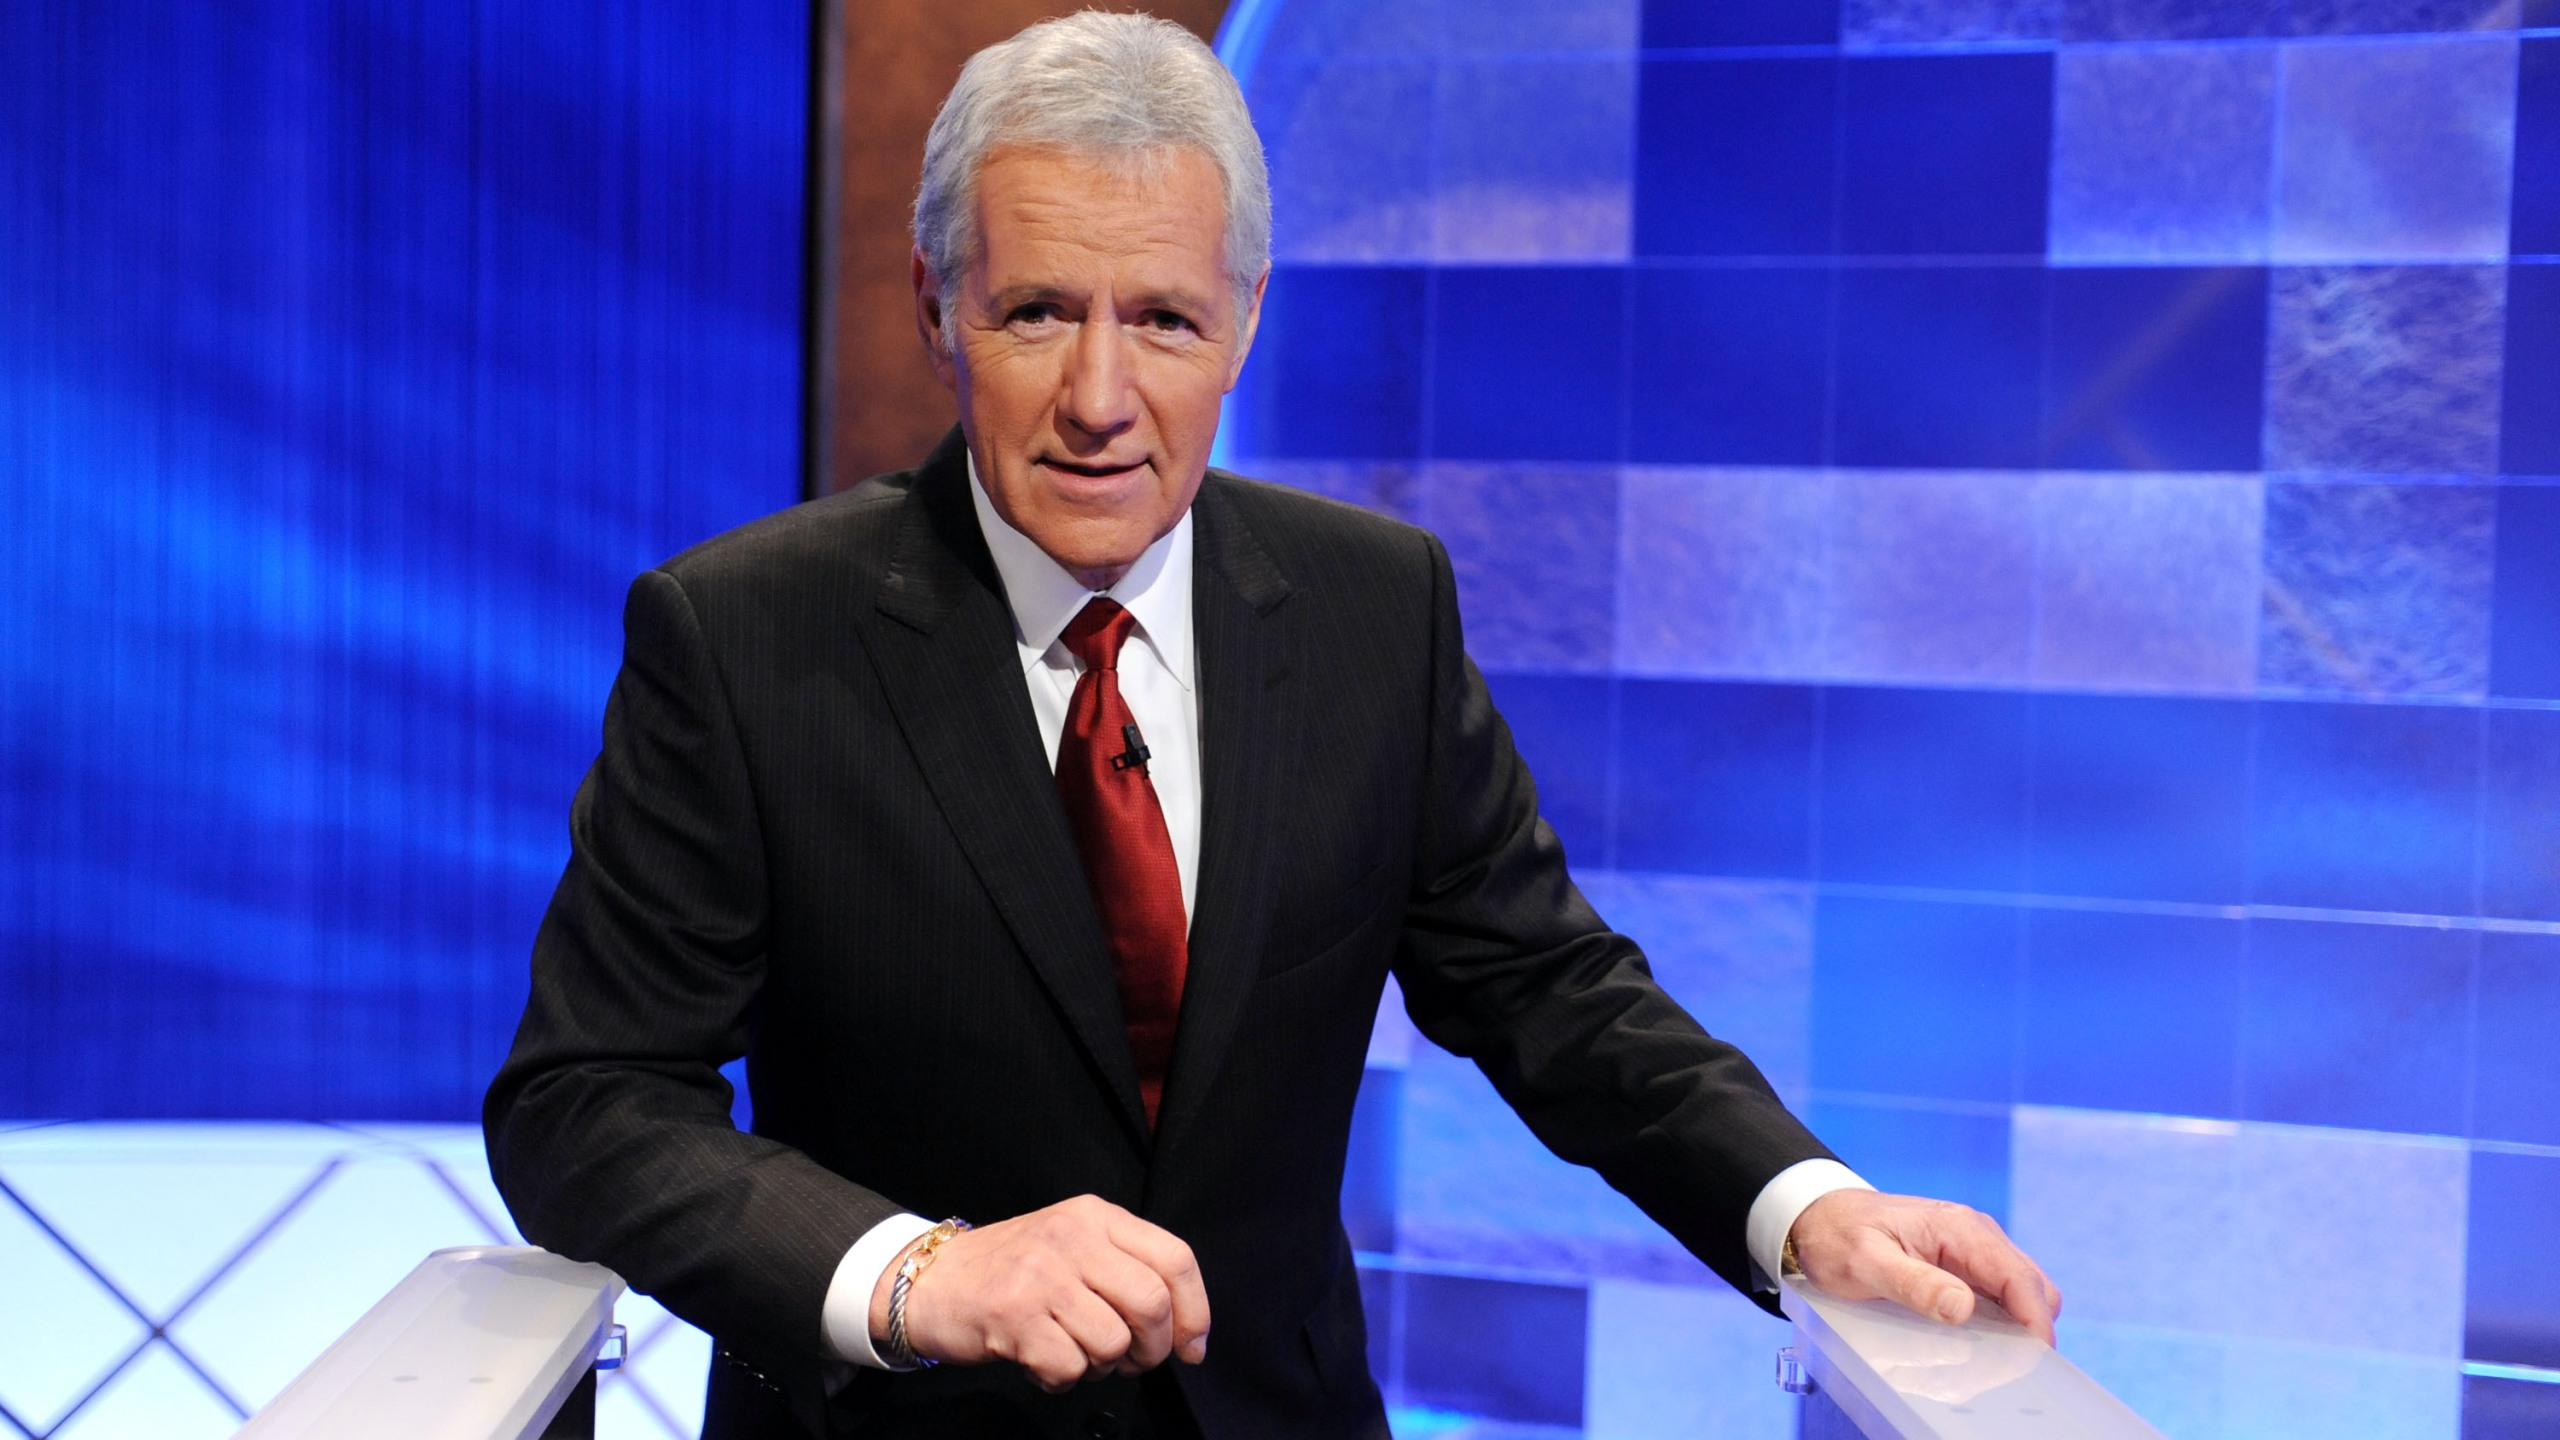 """Game show host Alex Trebek poses on the set of the """"Jeopardy!"""" in Culver City on April 17, 2010. (Amanda Edwards / Getty Images)"""